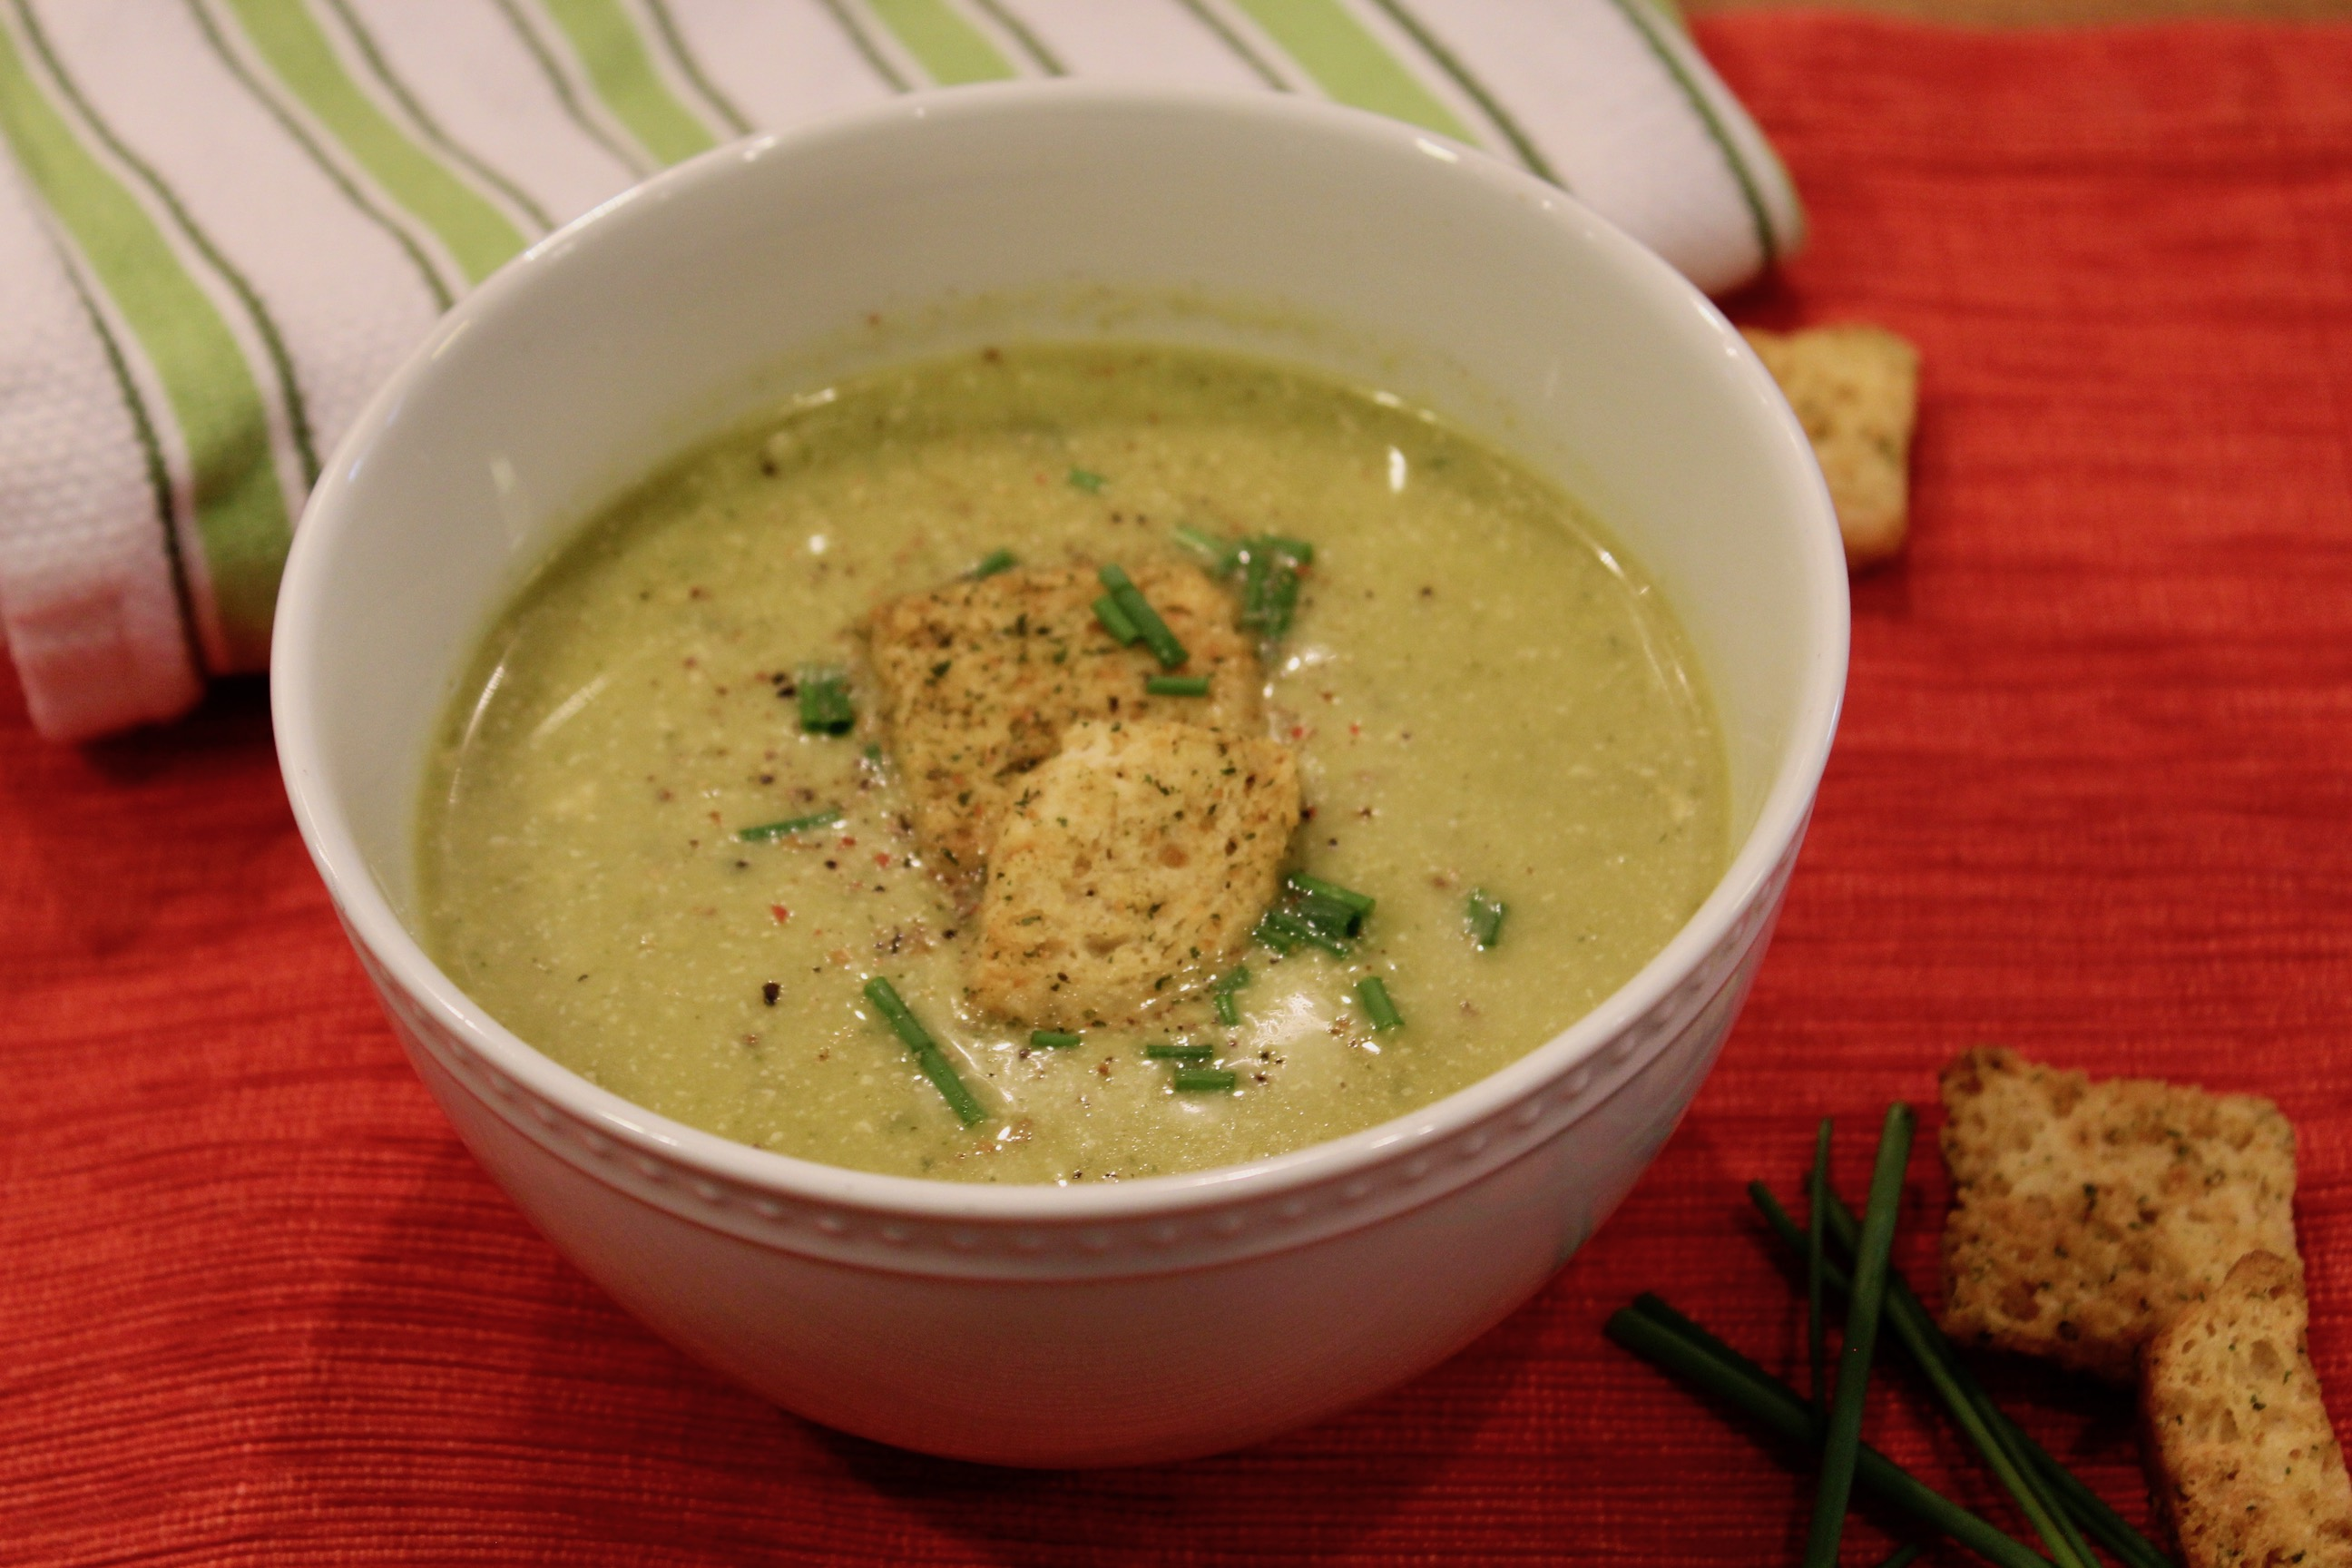 Quick and Easy Asparagus and Zucchini Summer Soup